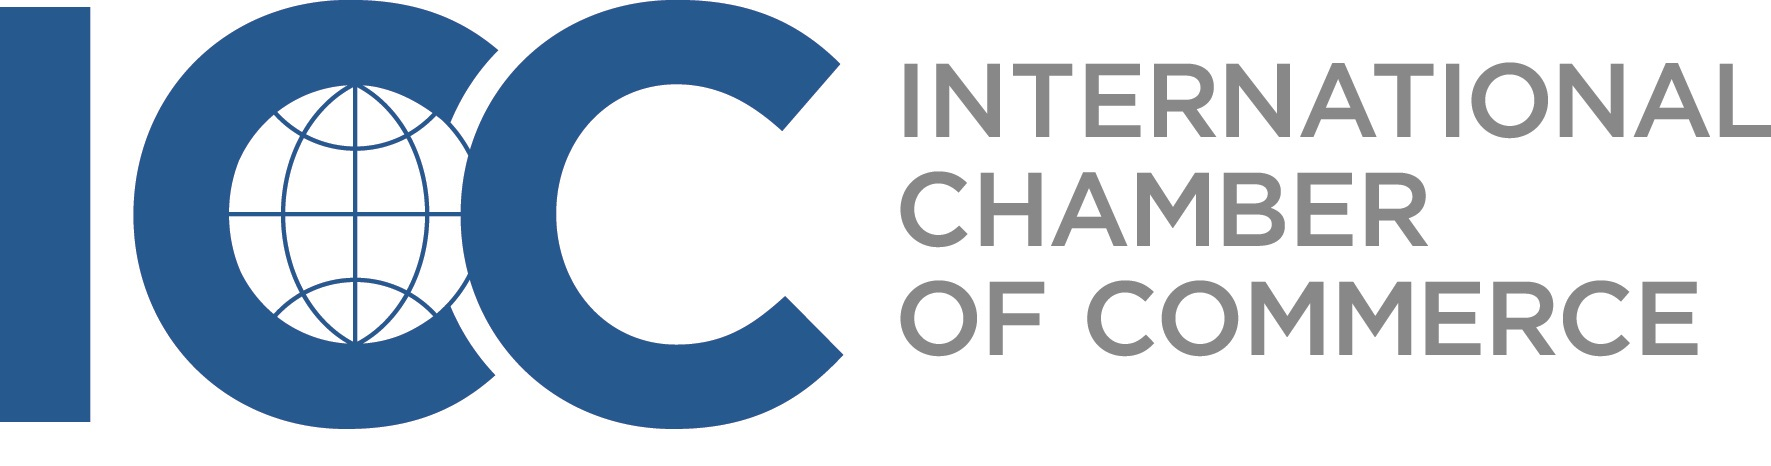 chambre commerce international opinions on international